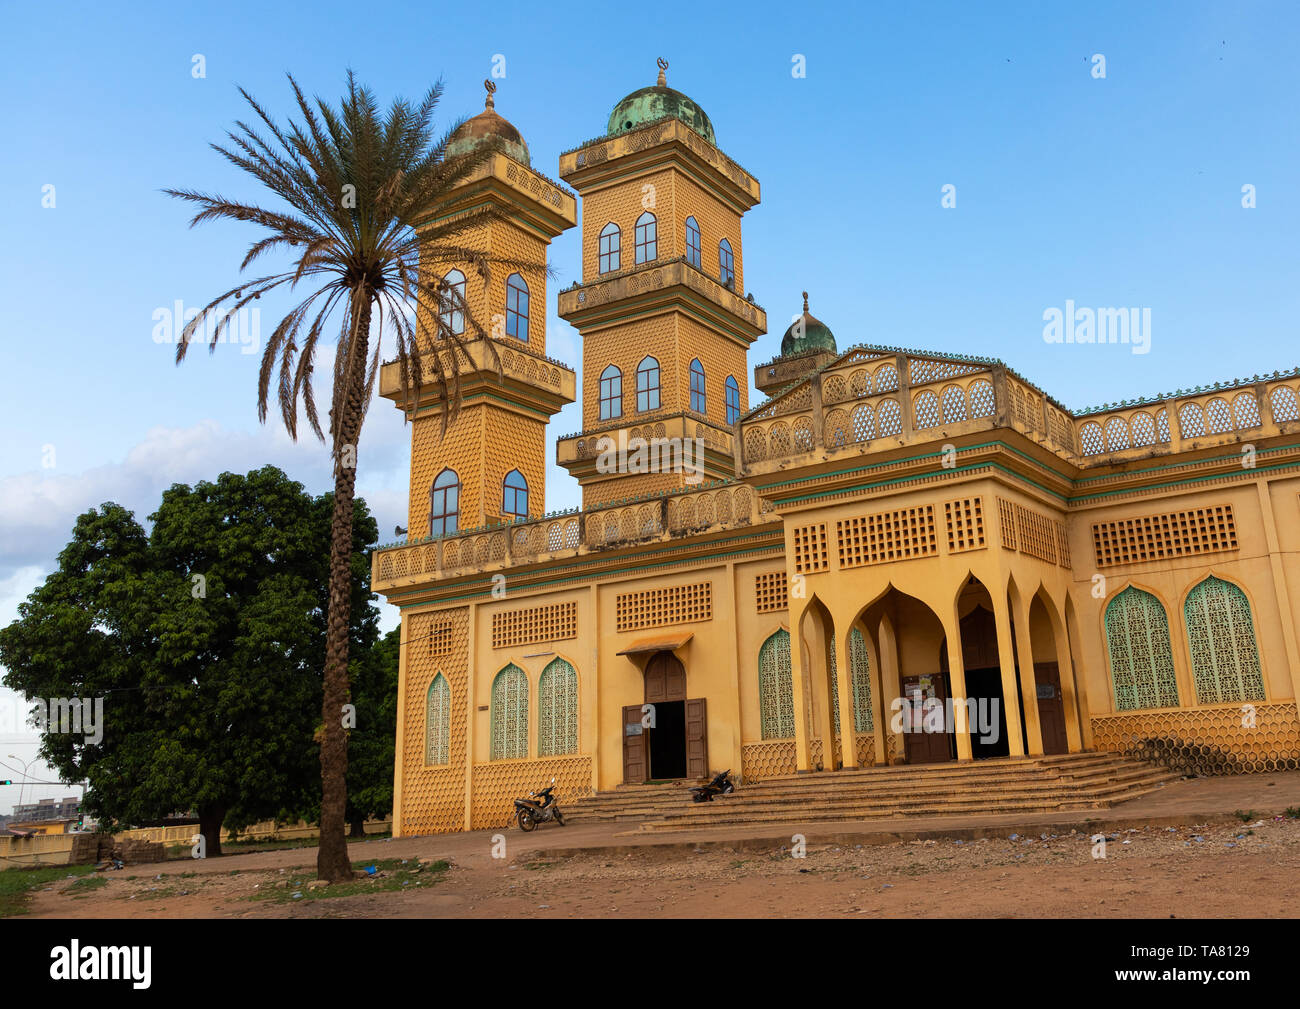 Grand mosque, Poro region, Korhogo, Ivory Coast Stock Photo